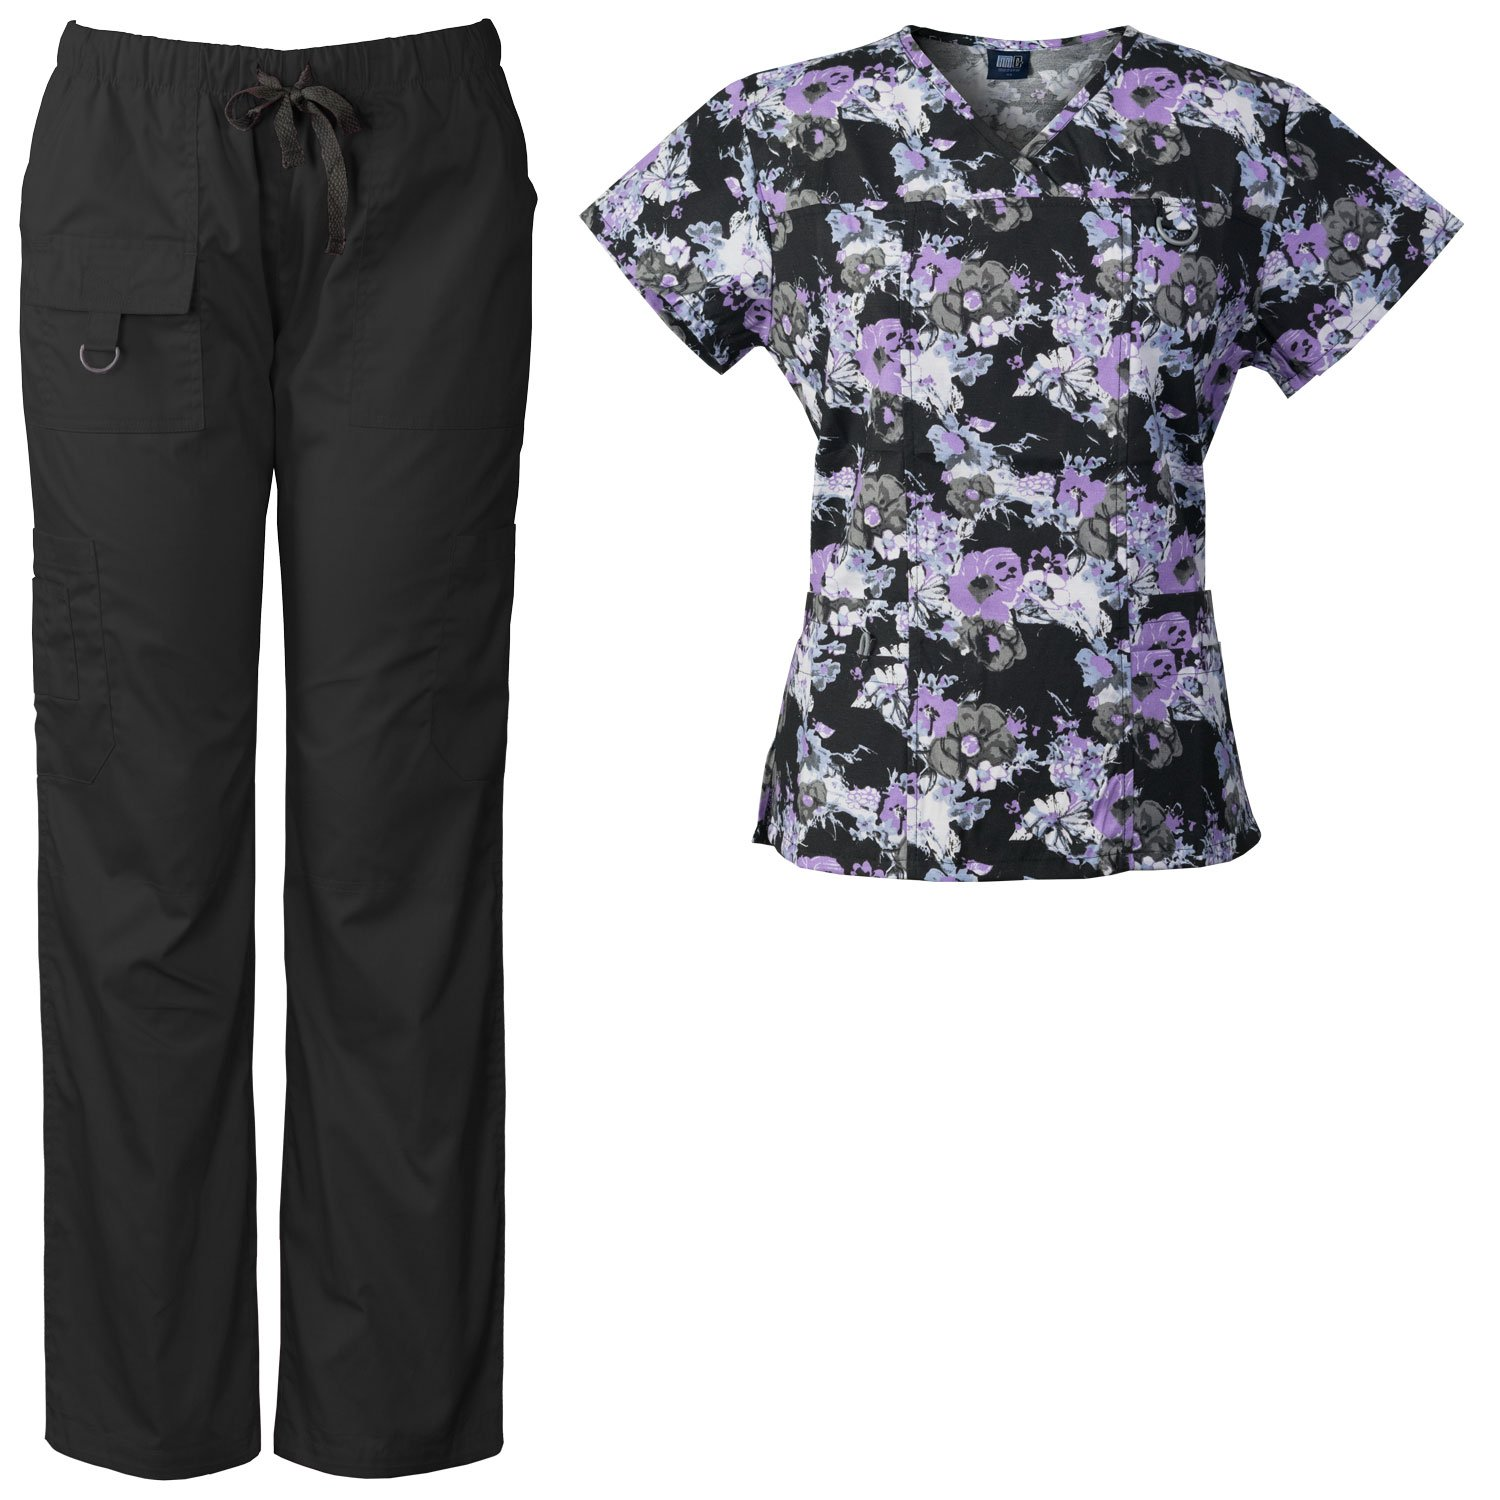 429dee148ef Medgear Women's Scrubs set, printed top and matching utility style scrubs  pants. It includes a printed scrub top that feature a V-neck, 2 bottom  pockets, ...